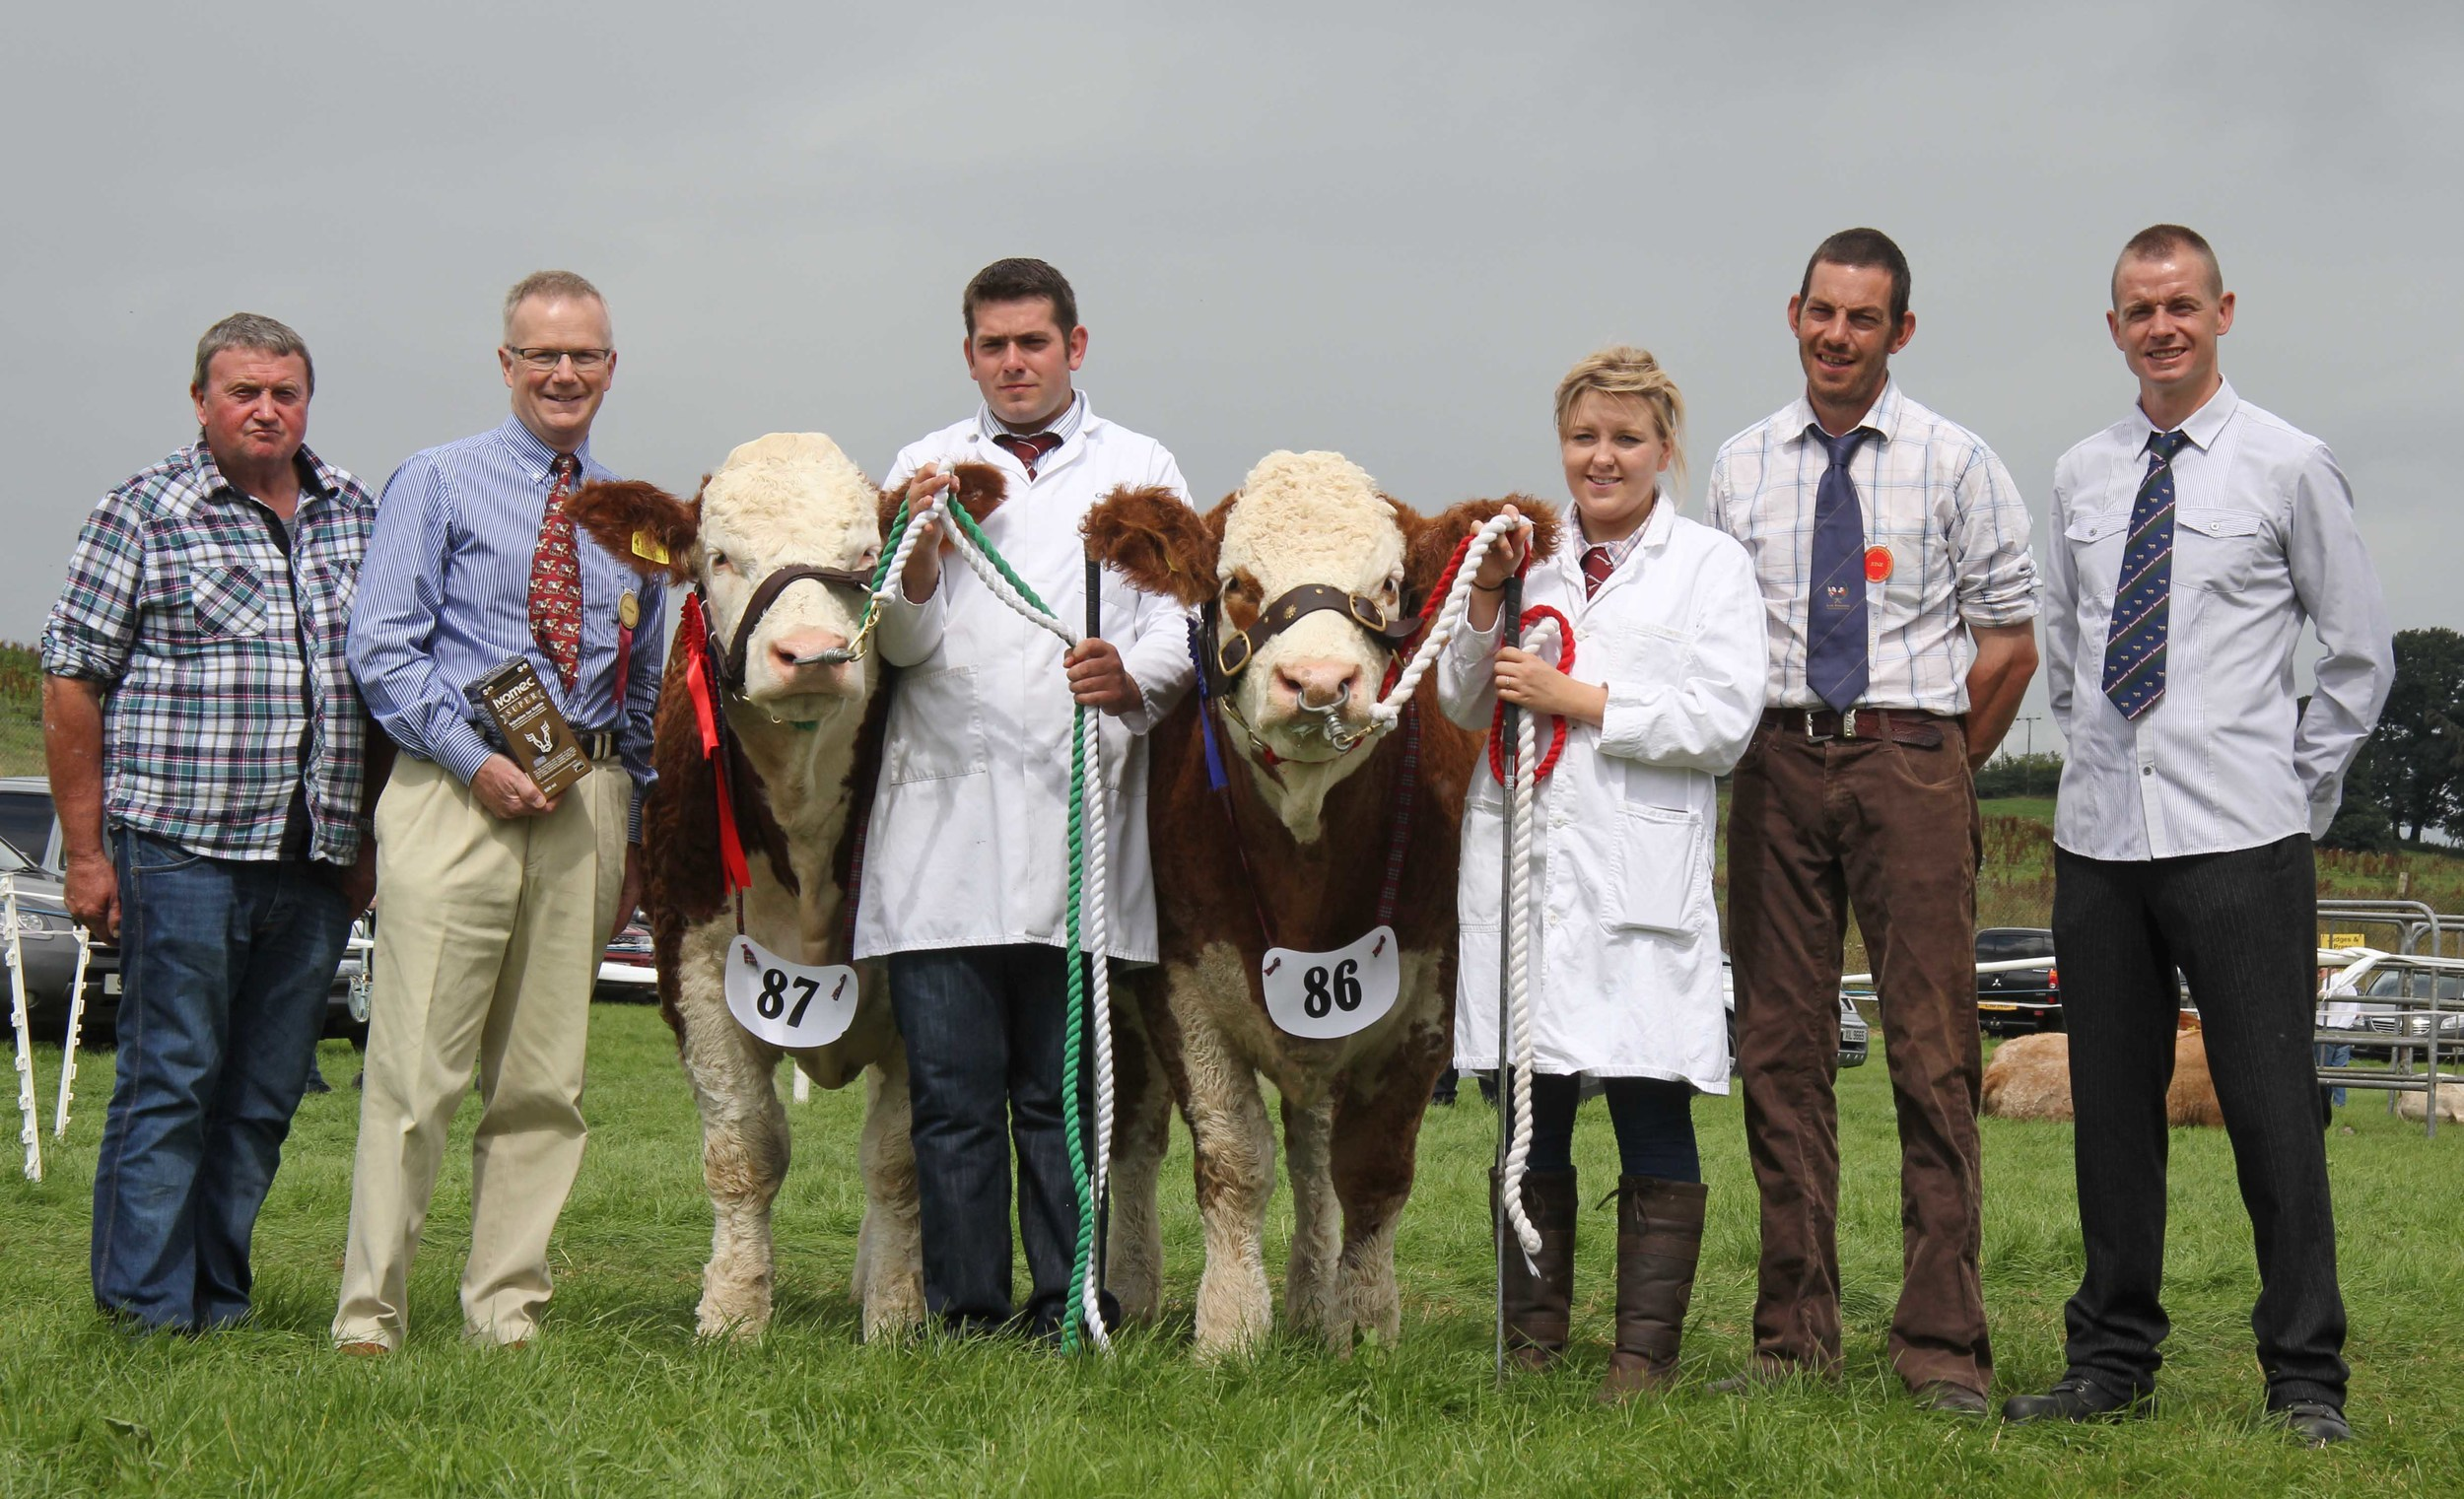 Ivomec Super Simmental Pair of the Year runners-up were Castlemount Bianca and Castlemount Modesty owned by Duncan McDowell, Newtownards, and shown by Richard McKeown and Fiona Sloan. Included are sponsor Philip Clarke, Merial Animal Health; judge Garrett Behan, Portlaoise; and NI Simmental Club chairman Richard Rodgers.